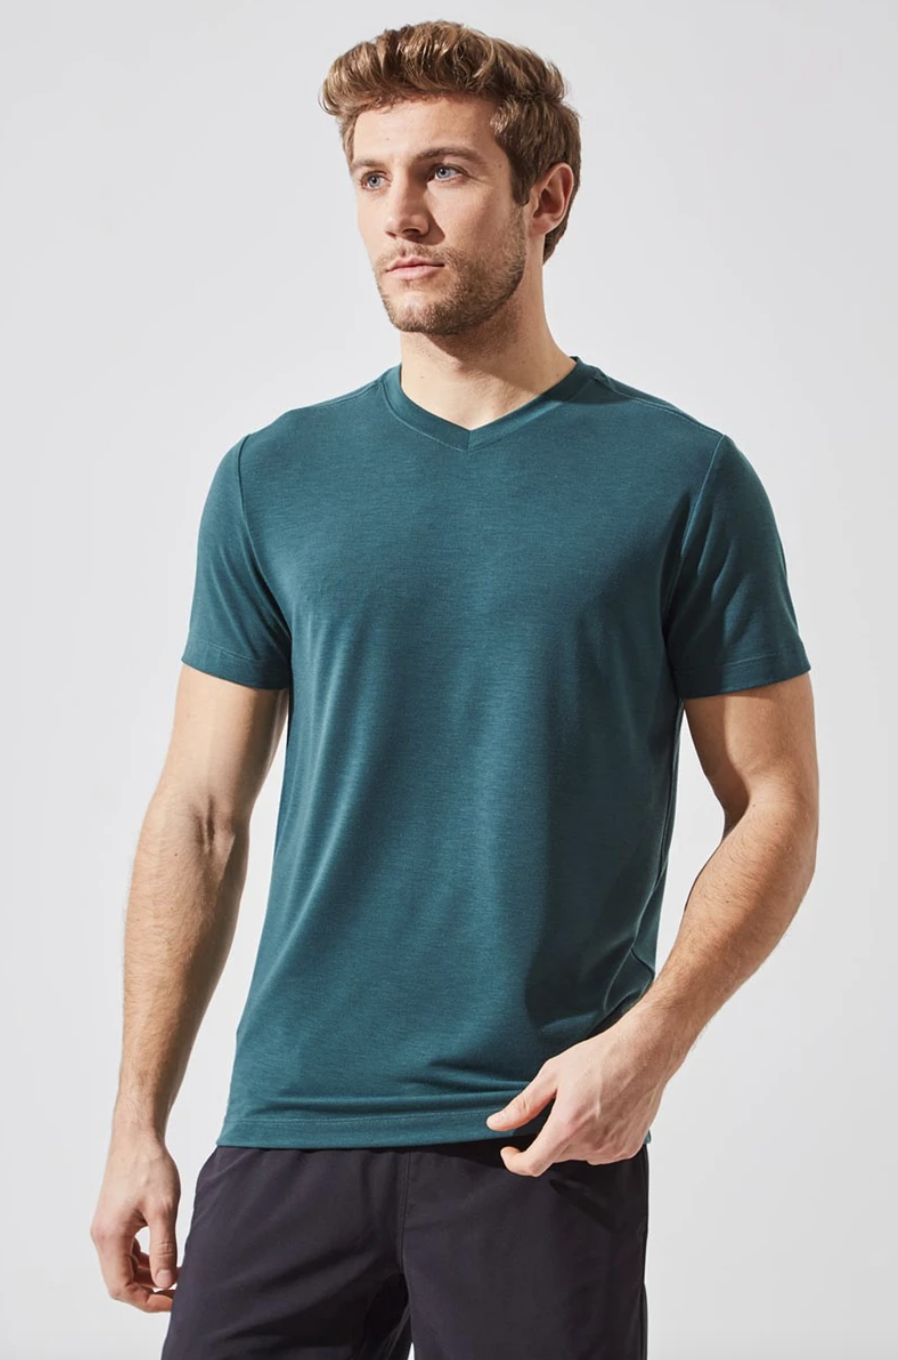 Condition Recycled Polyester Stink-Free Tee in Ultramarine Green (Photo via MPG)